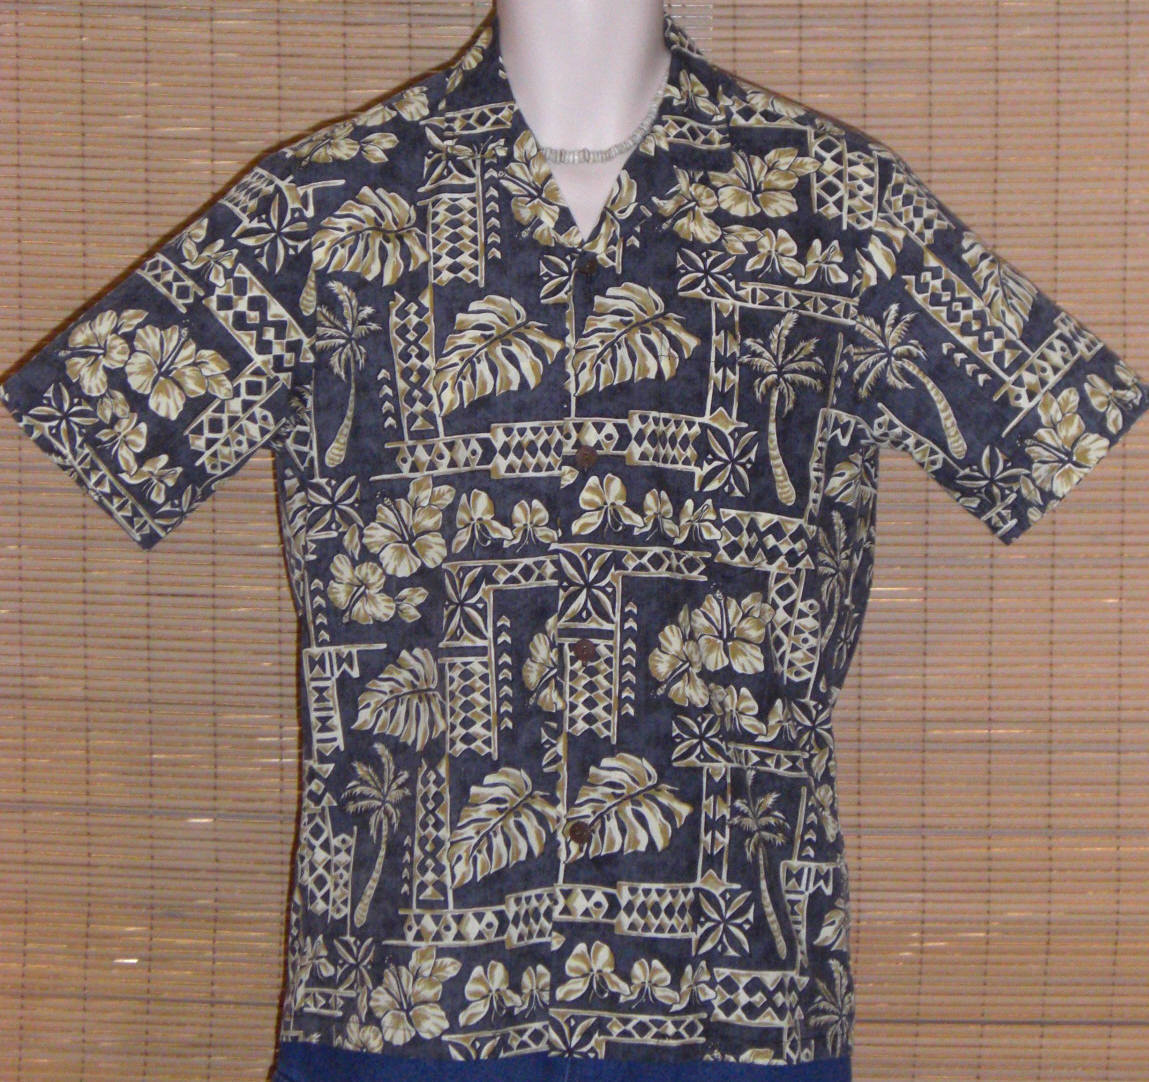 Primary image for Royal Creations Hawaiian Shirt Blue Gray Tan Small LN